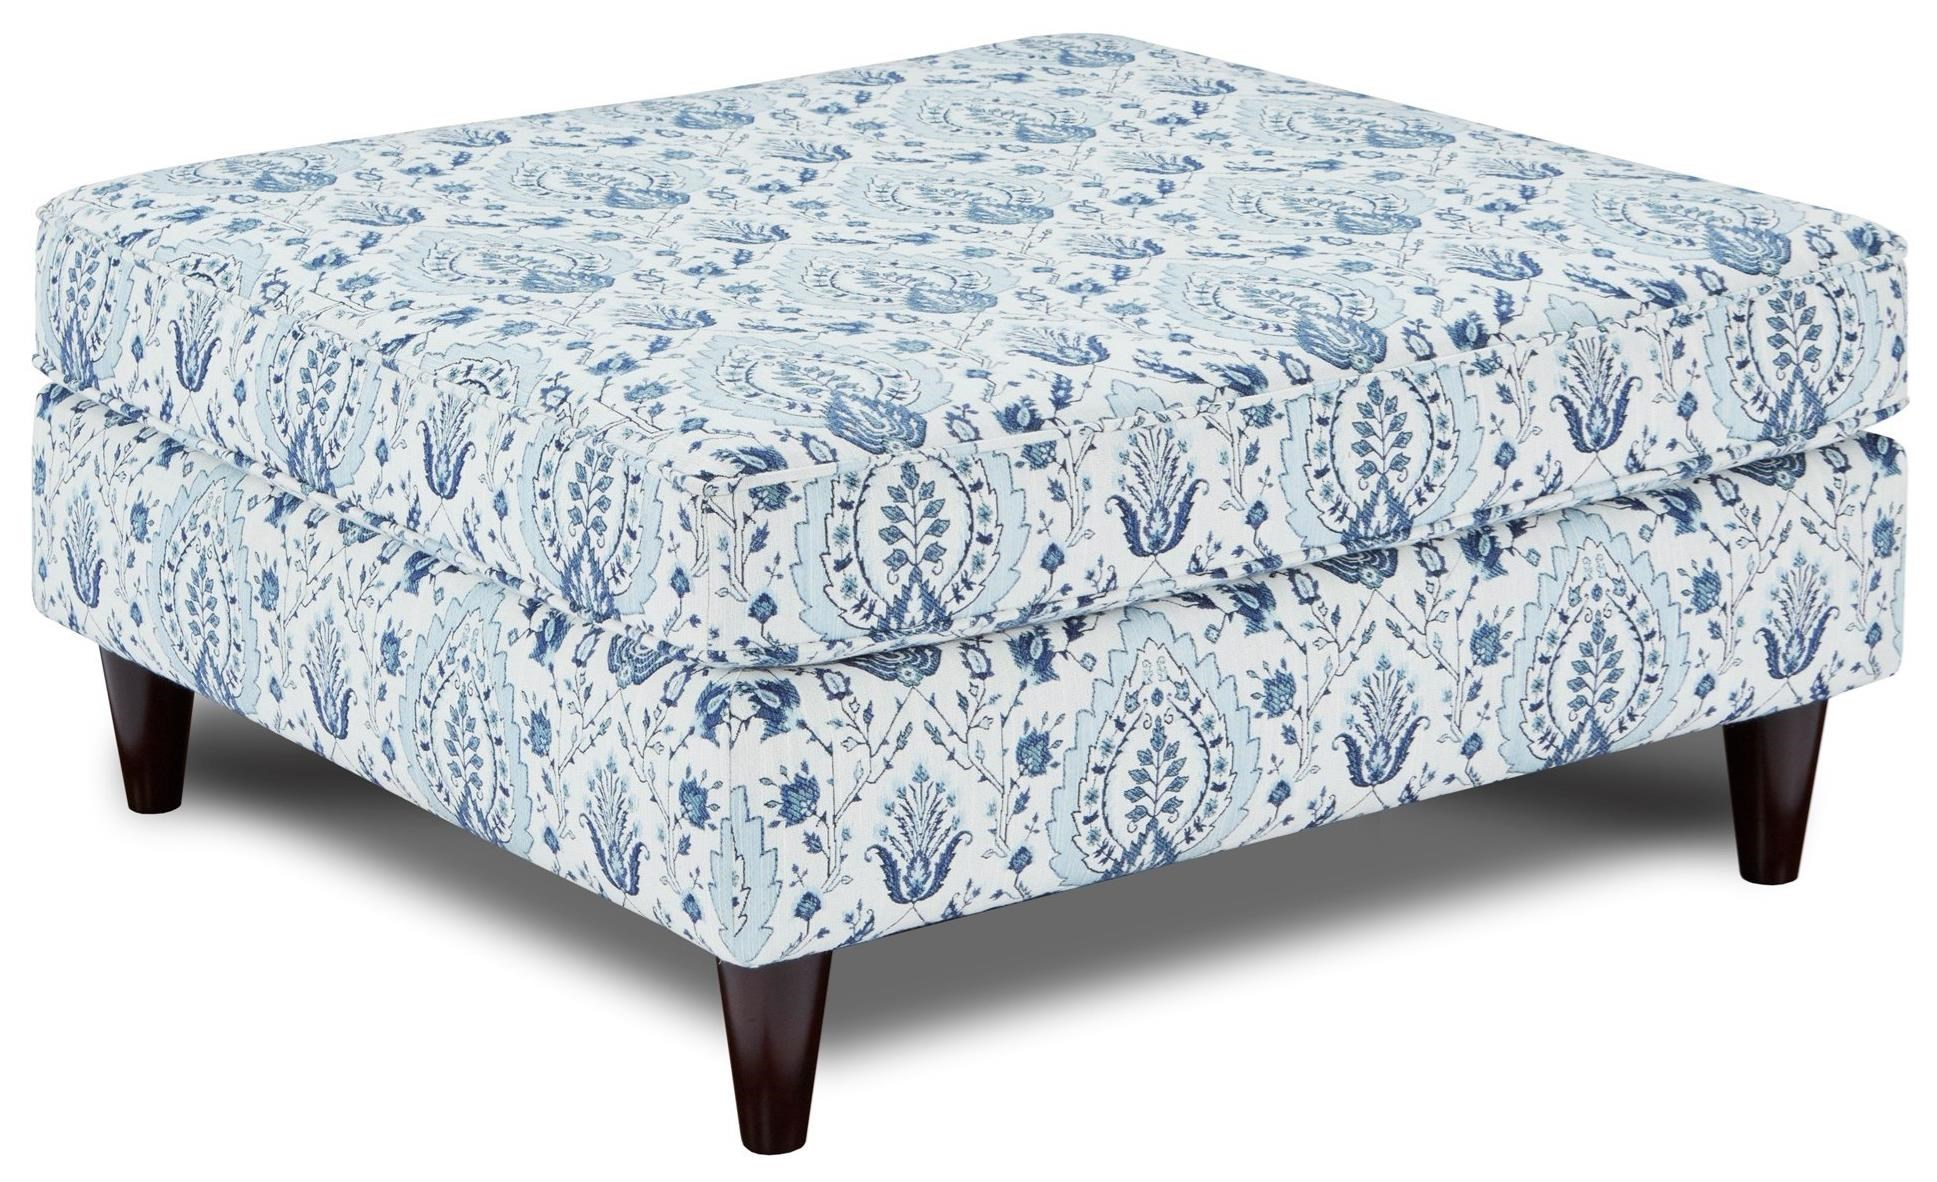 170 Ottoman by Fusion Furniture at Furniture Superstore - Rochester, MN